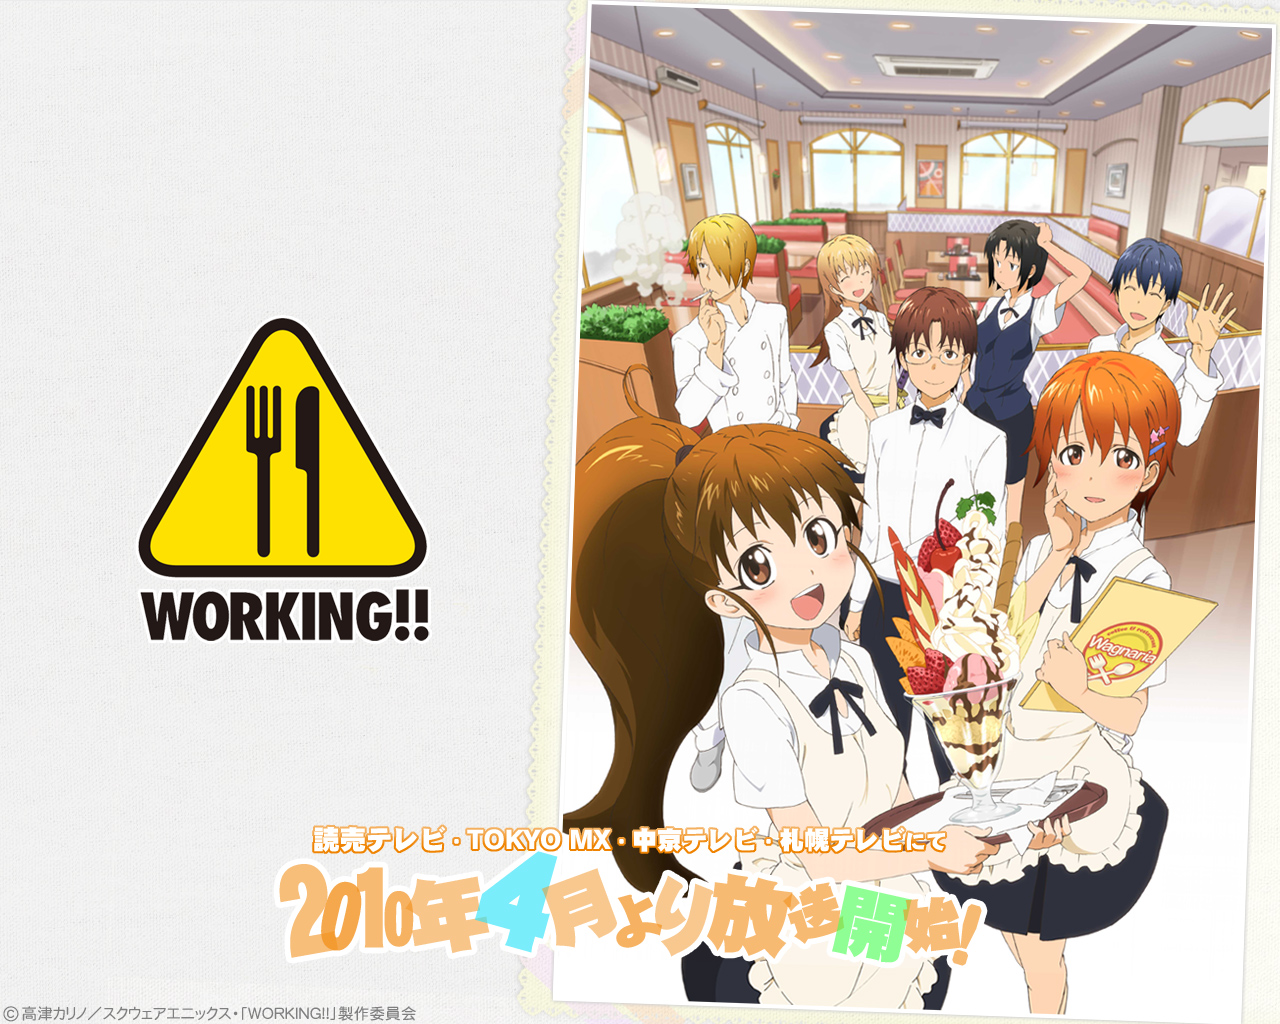 Working Download Working Image